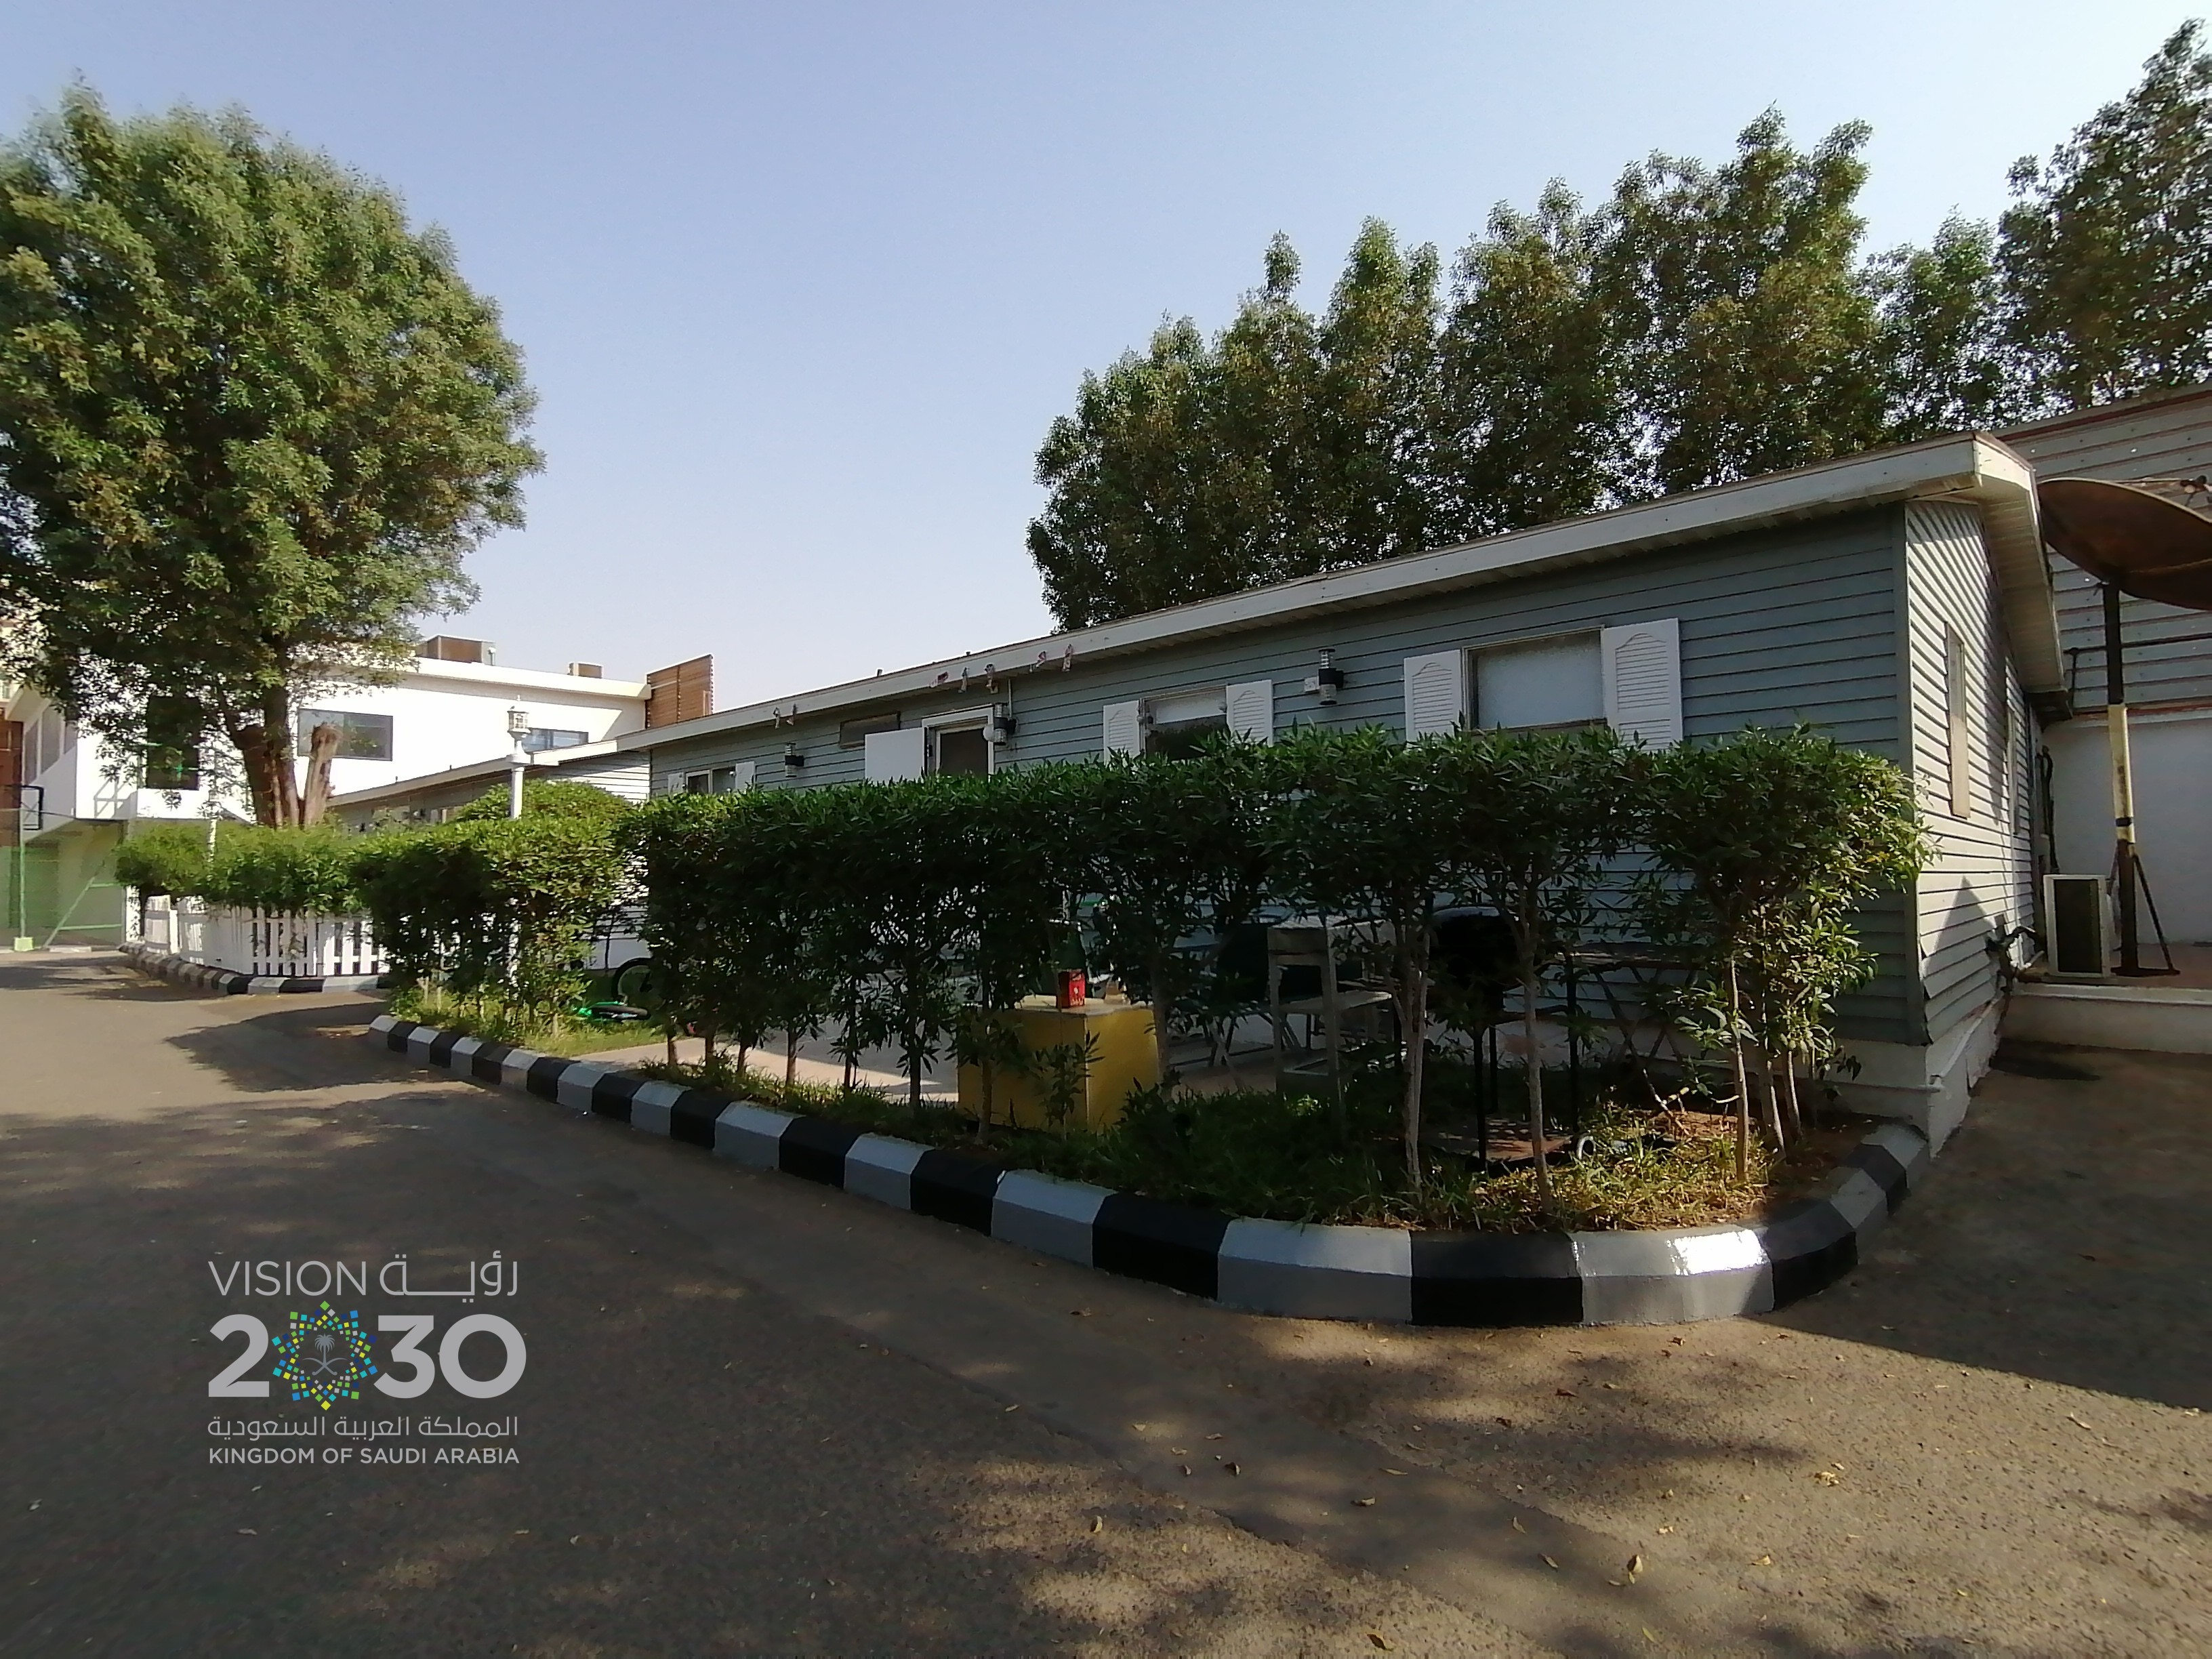 <br /> <b>Notice</b>:  Undefined variable: https://s3-ap-southeast-1.amazonaws.com/mycrm-pro-accounts-v2/property/full/1908/45PncH1puSO3QHnE.jpeg in <b>/home/a2erfg/public_html/livingcompound.com/index.php</b> on line <b>552</b><br />